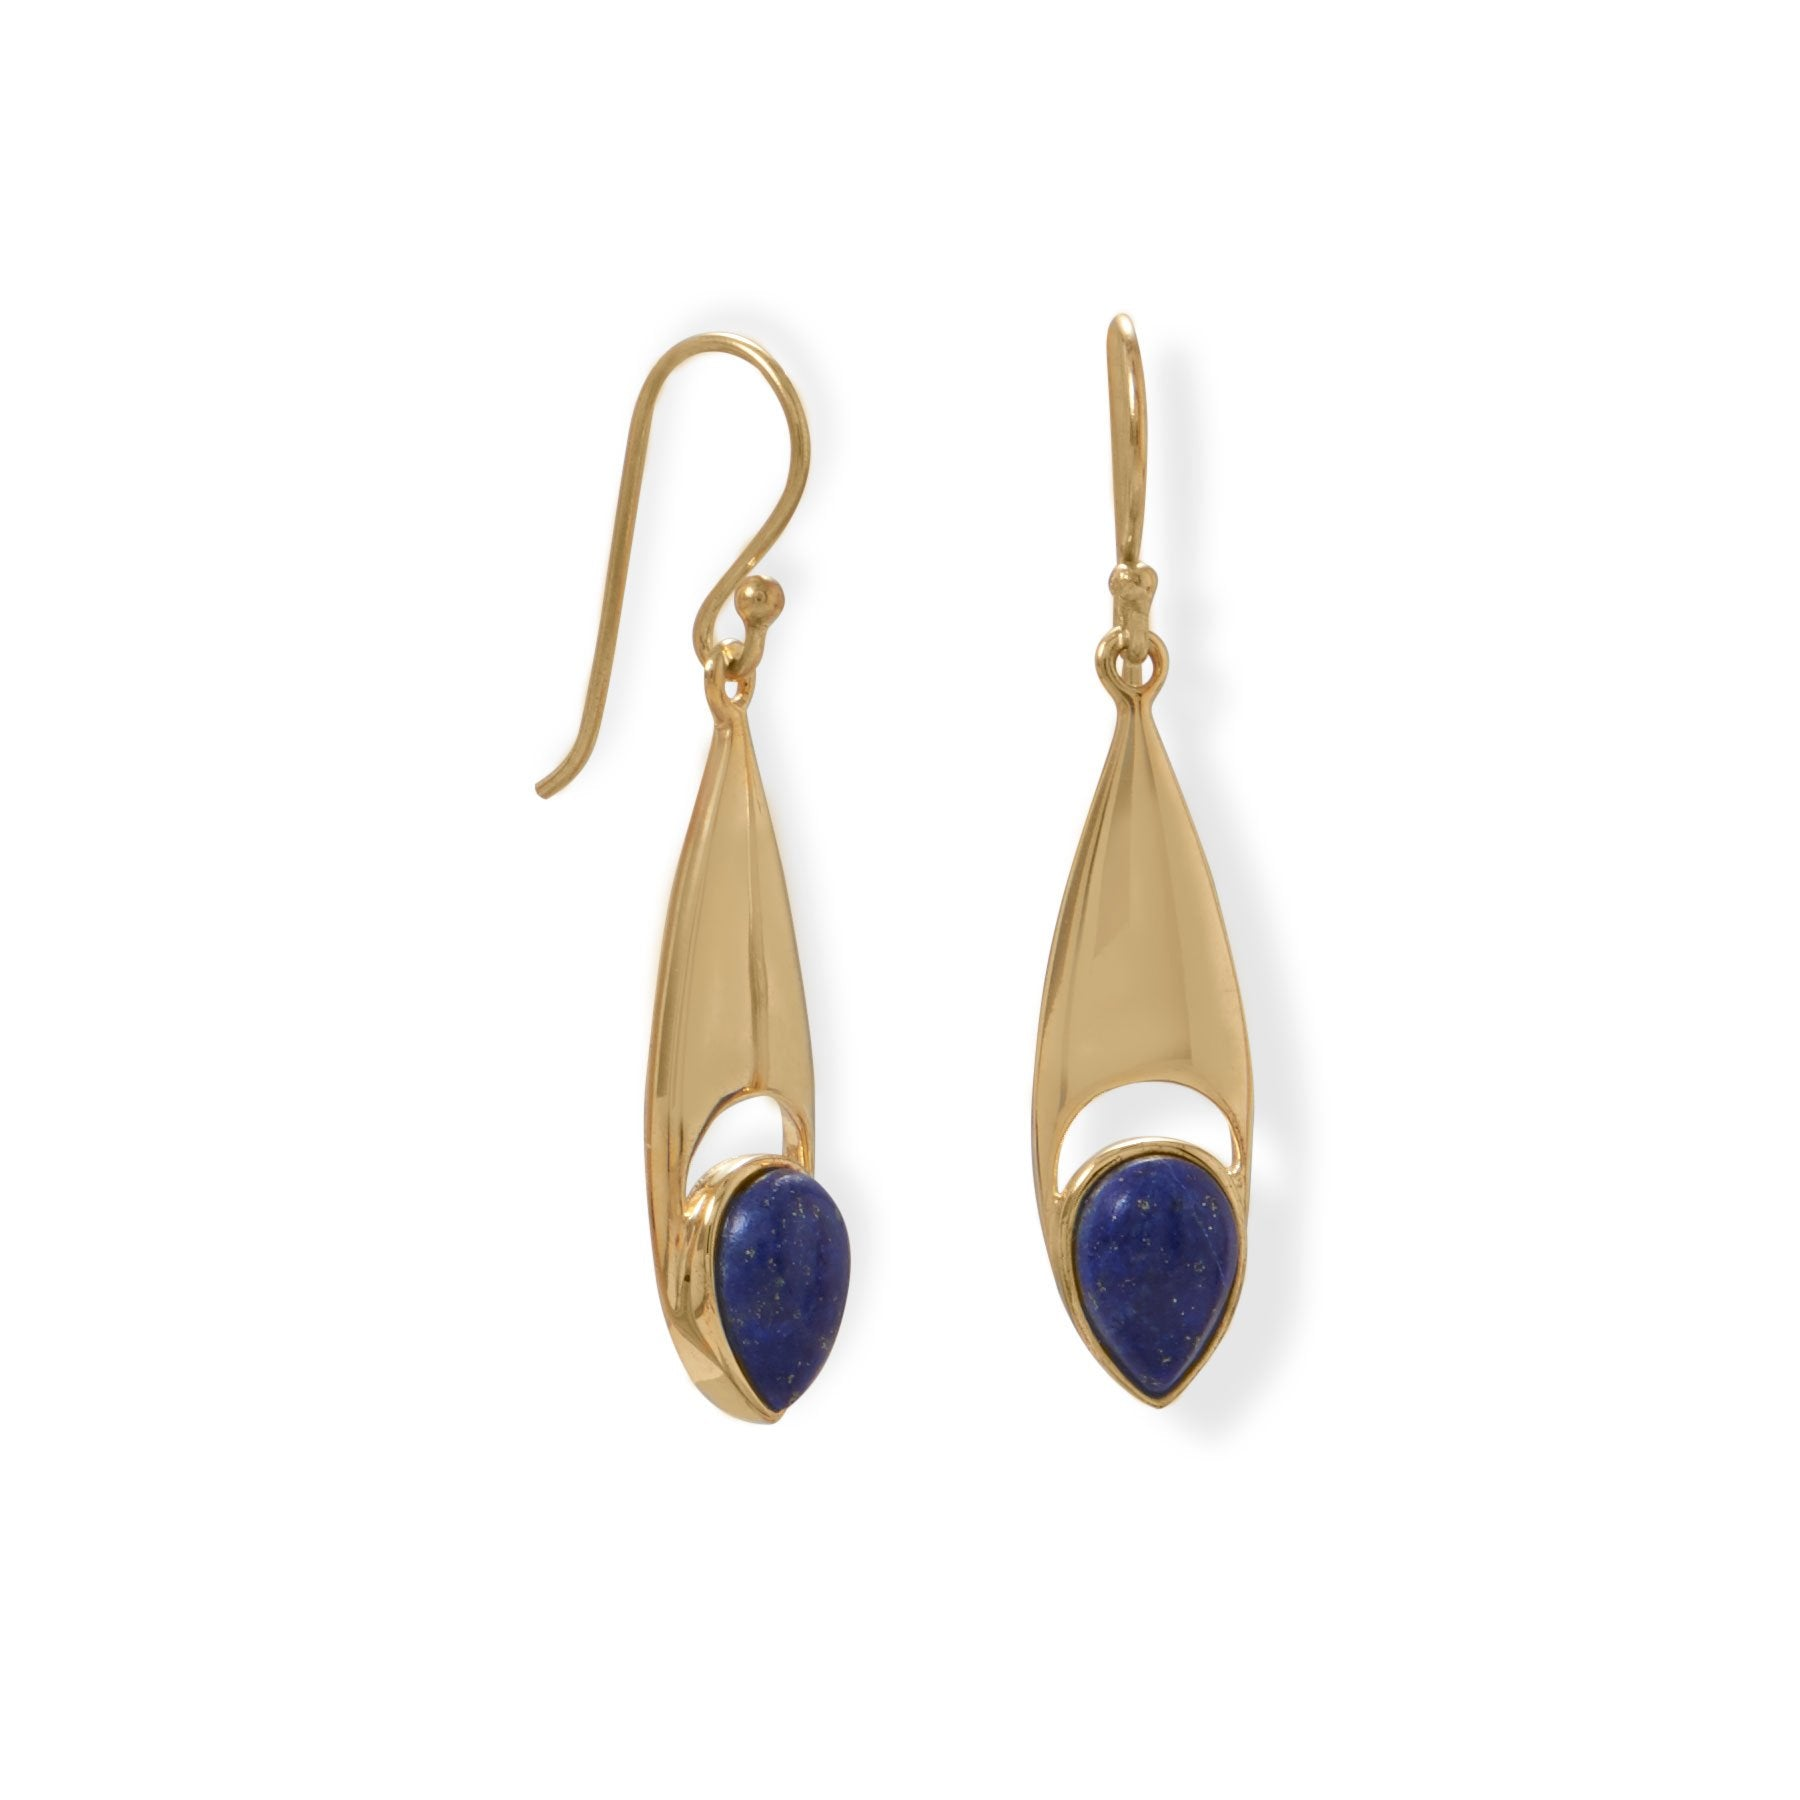 925 Sterling Silver 14 Karat Gold Plated Pear Shaped Lapis Earrings